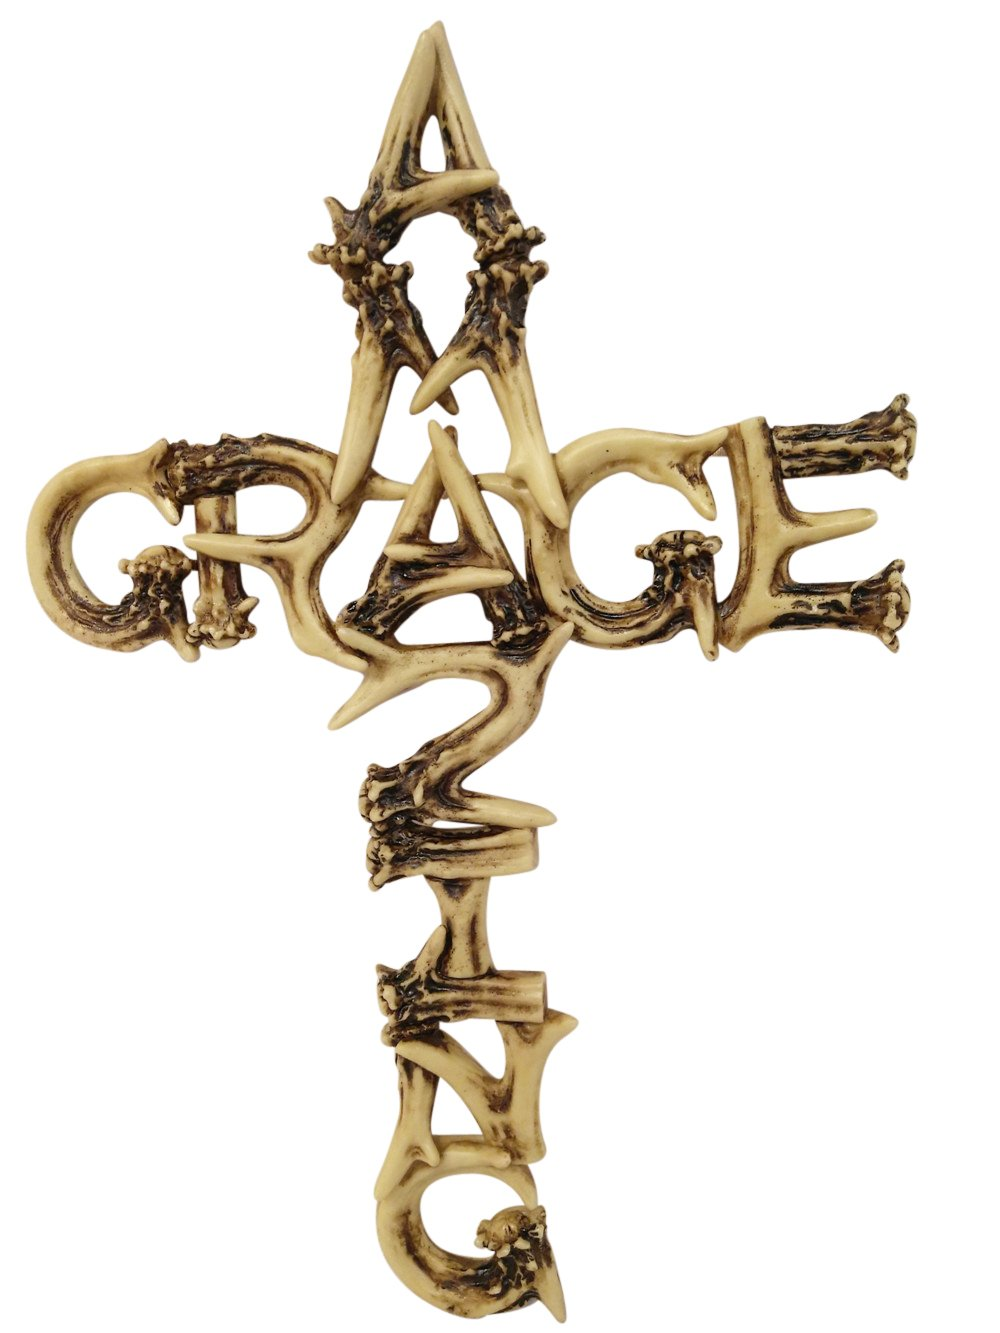 Pine Ridge Amazing Grace Antler Christian Wall Cross Home Decor Catholic Crafted Polyresin Art Cross Gift Ideas, 16""